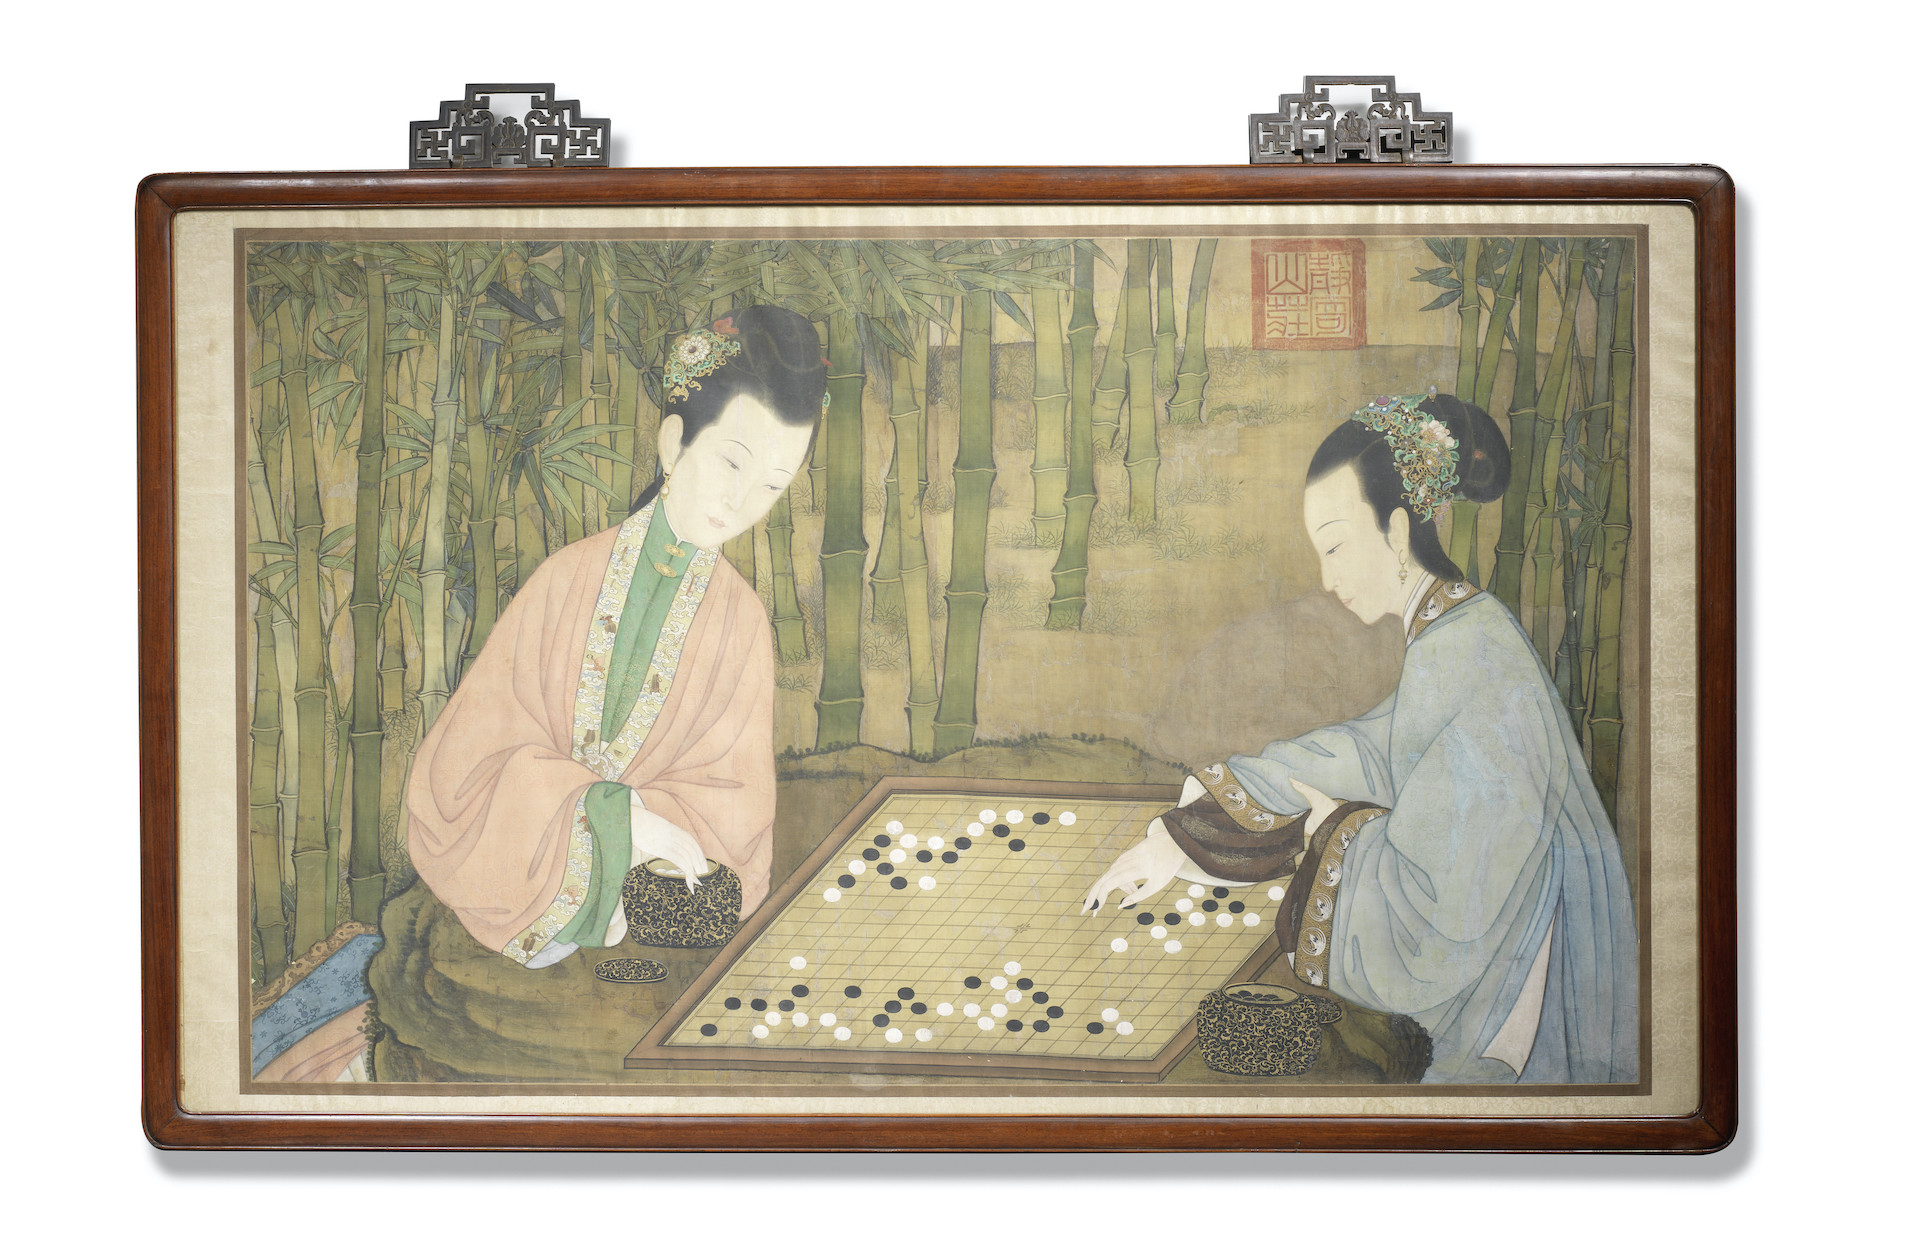 A LARGE COURT PAINTING OF LADIES PLAYING CHESS, 18th century, Including the frame: 155cm (61in) wide x 99cm (39in) high. £60,000-80,000